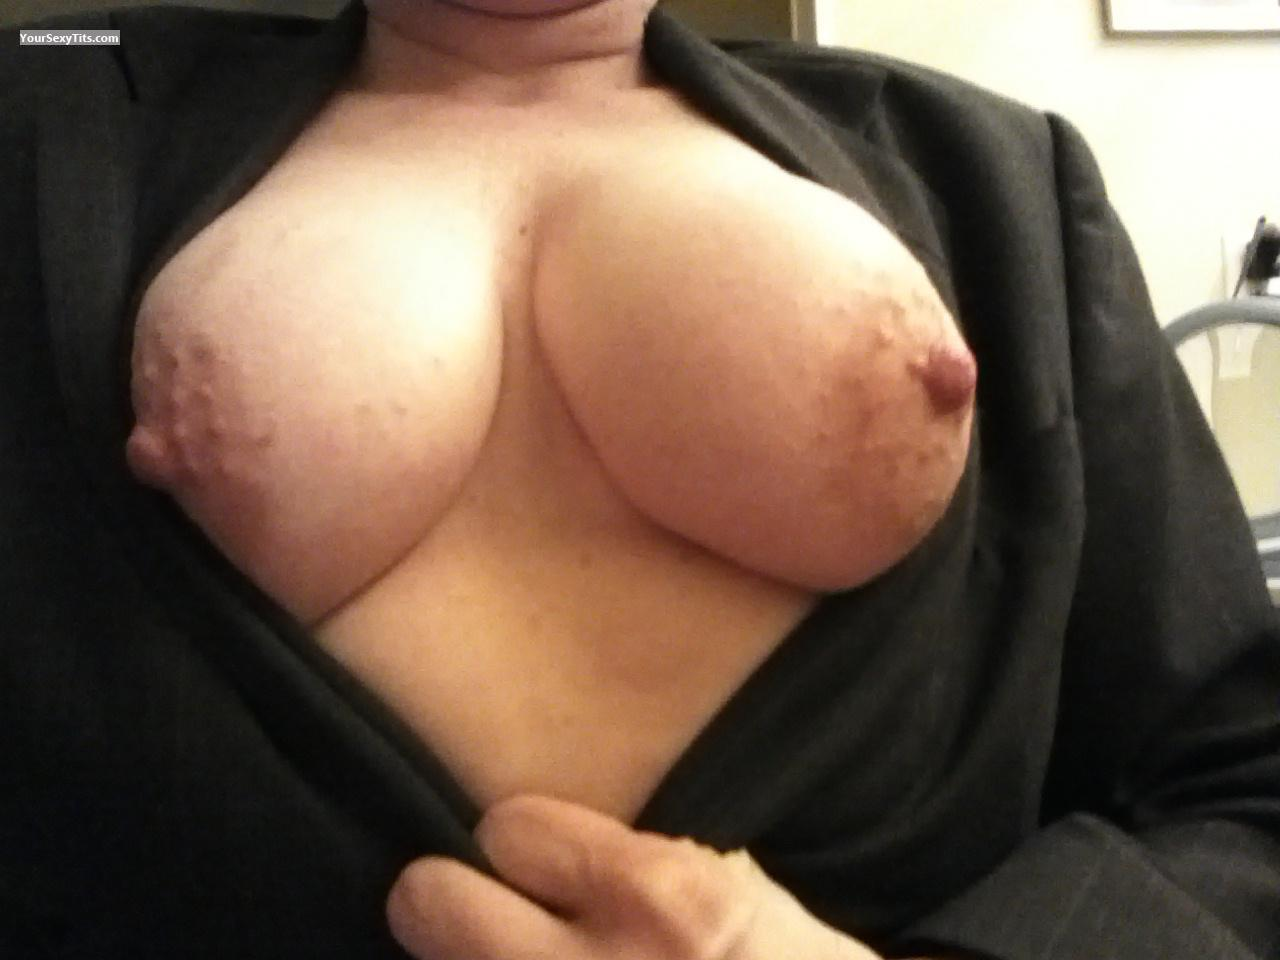 Big Tits Of My Wife Selfie by BusyBee